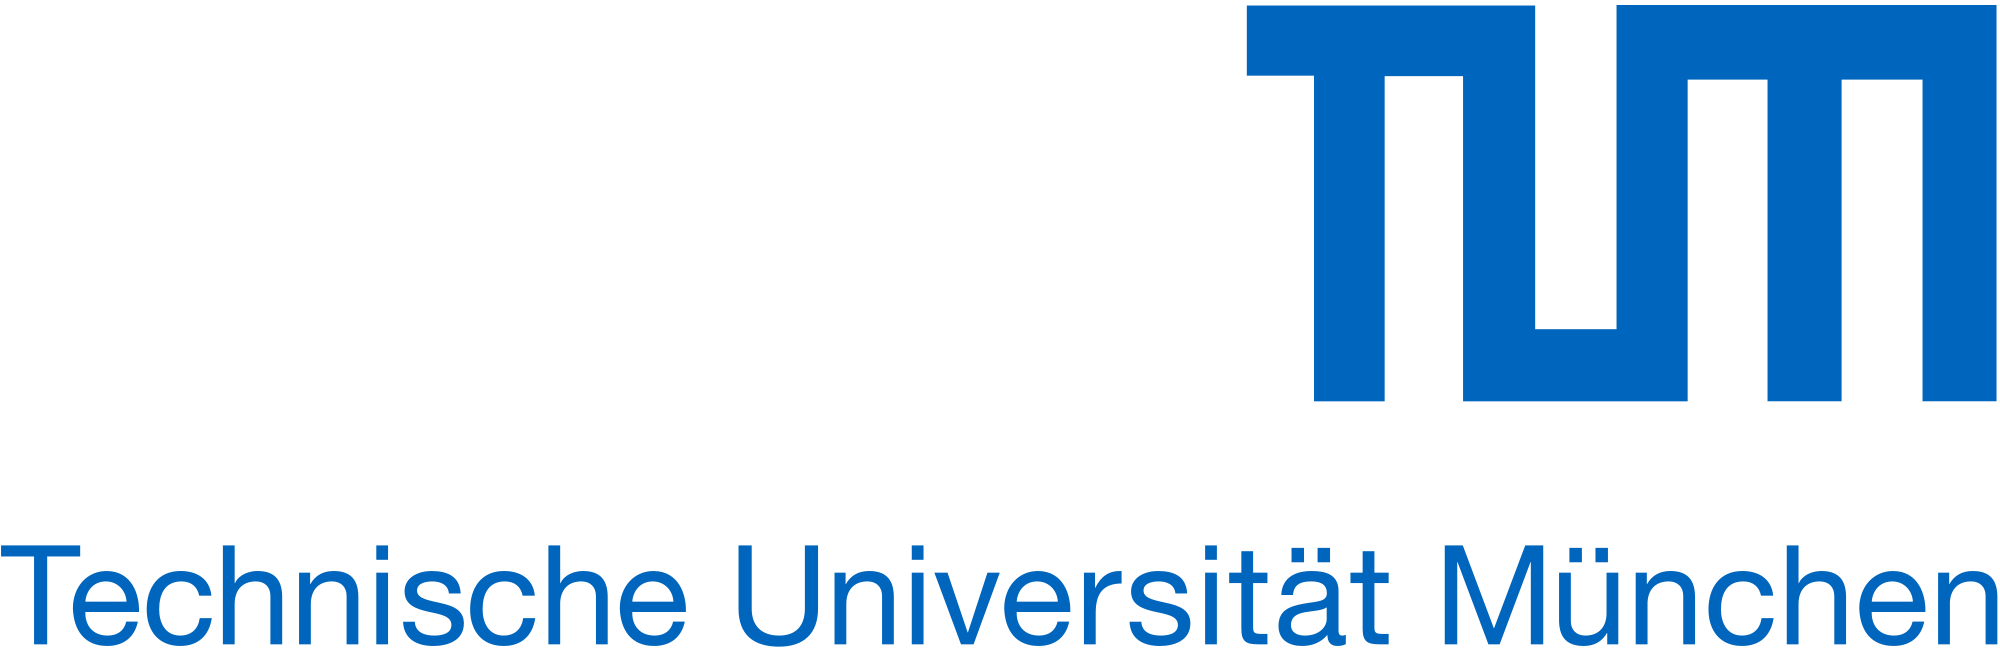 Technical University of Munich, Institute of Pharmacology and Toxicology.png